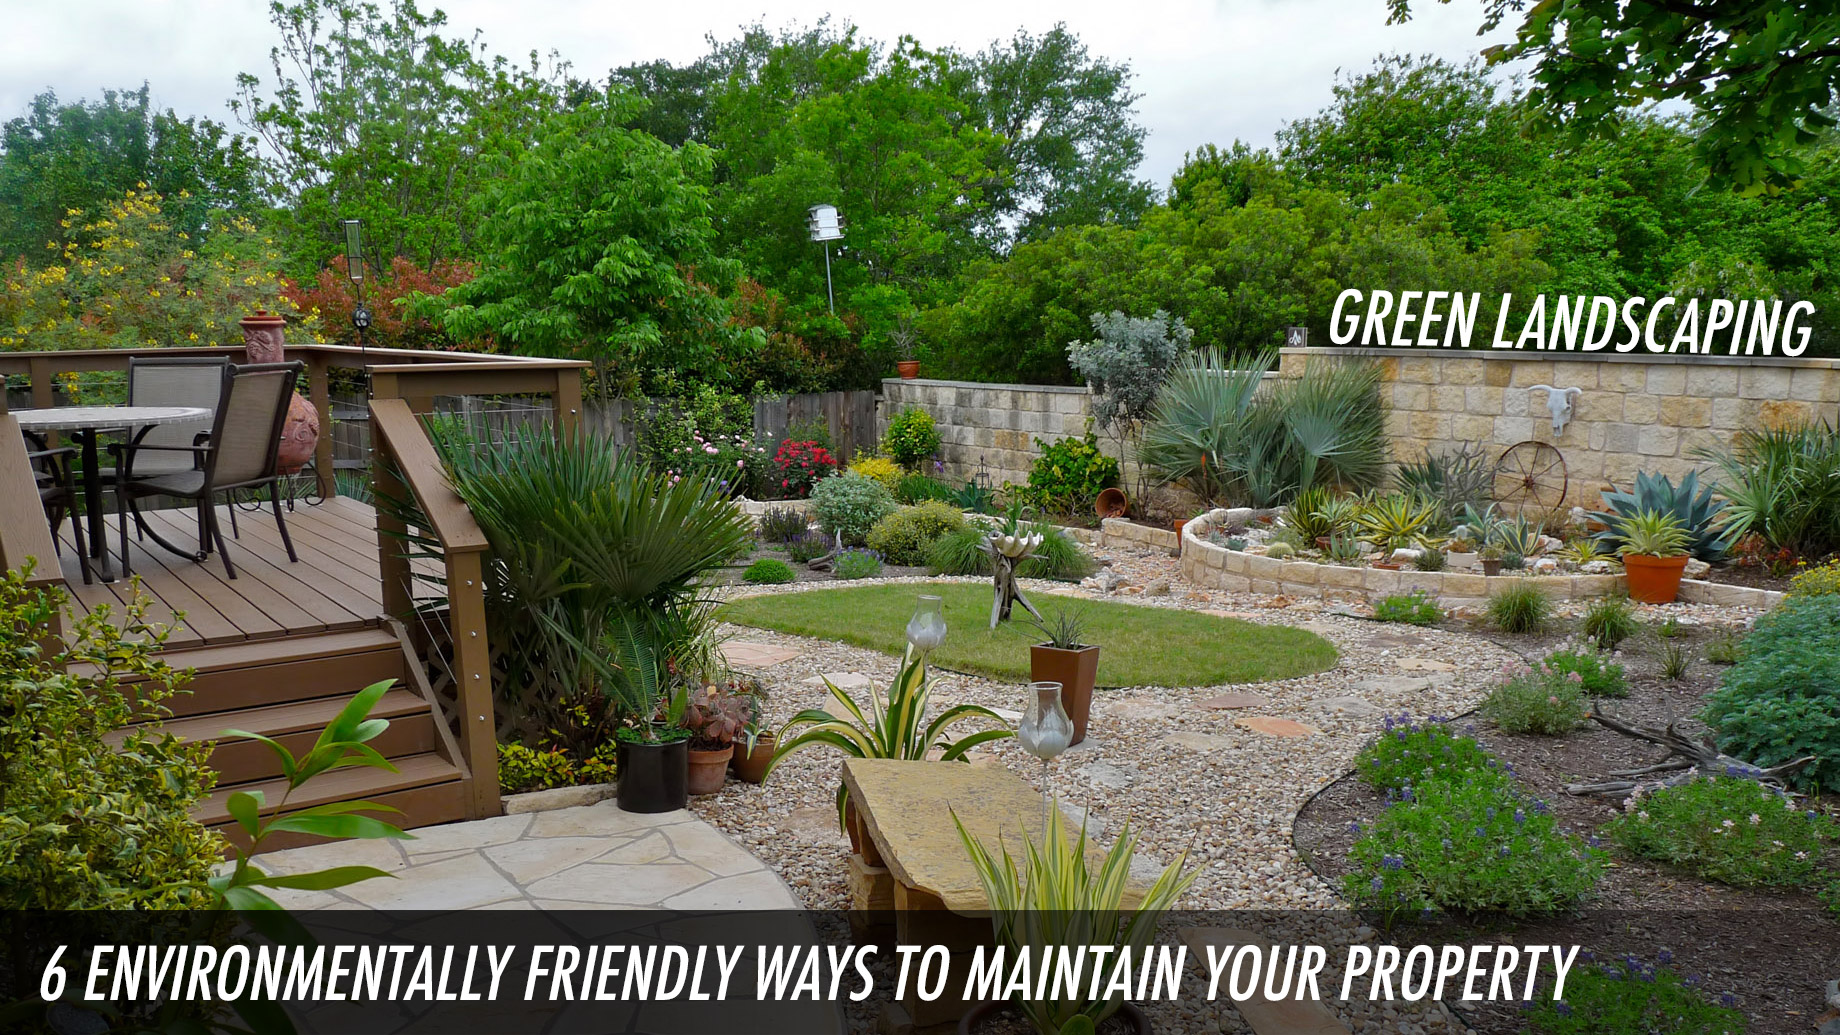 Green Landscaping - 6 Environmentally Friendly Ways to Maintain Your Property